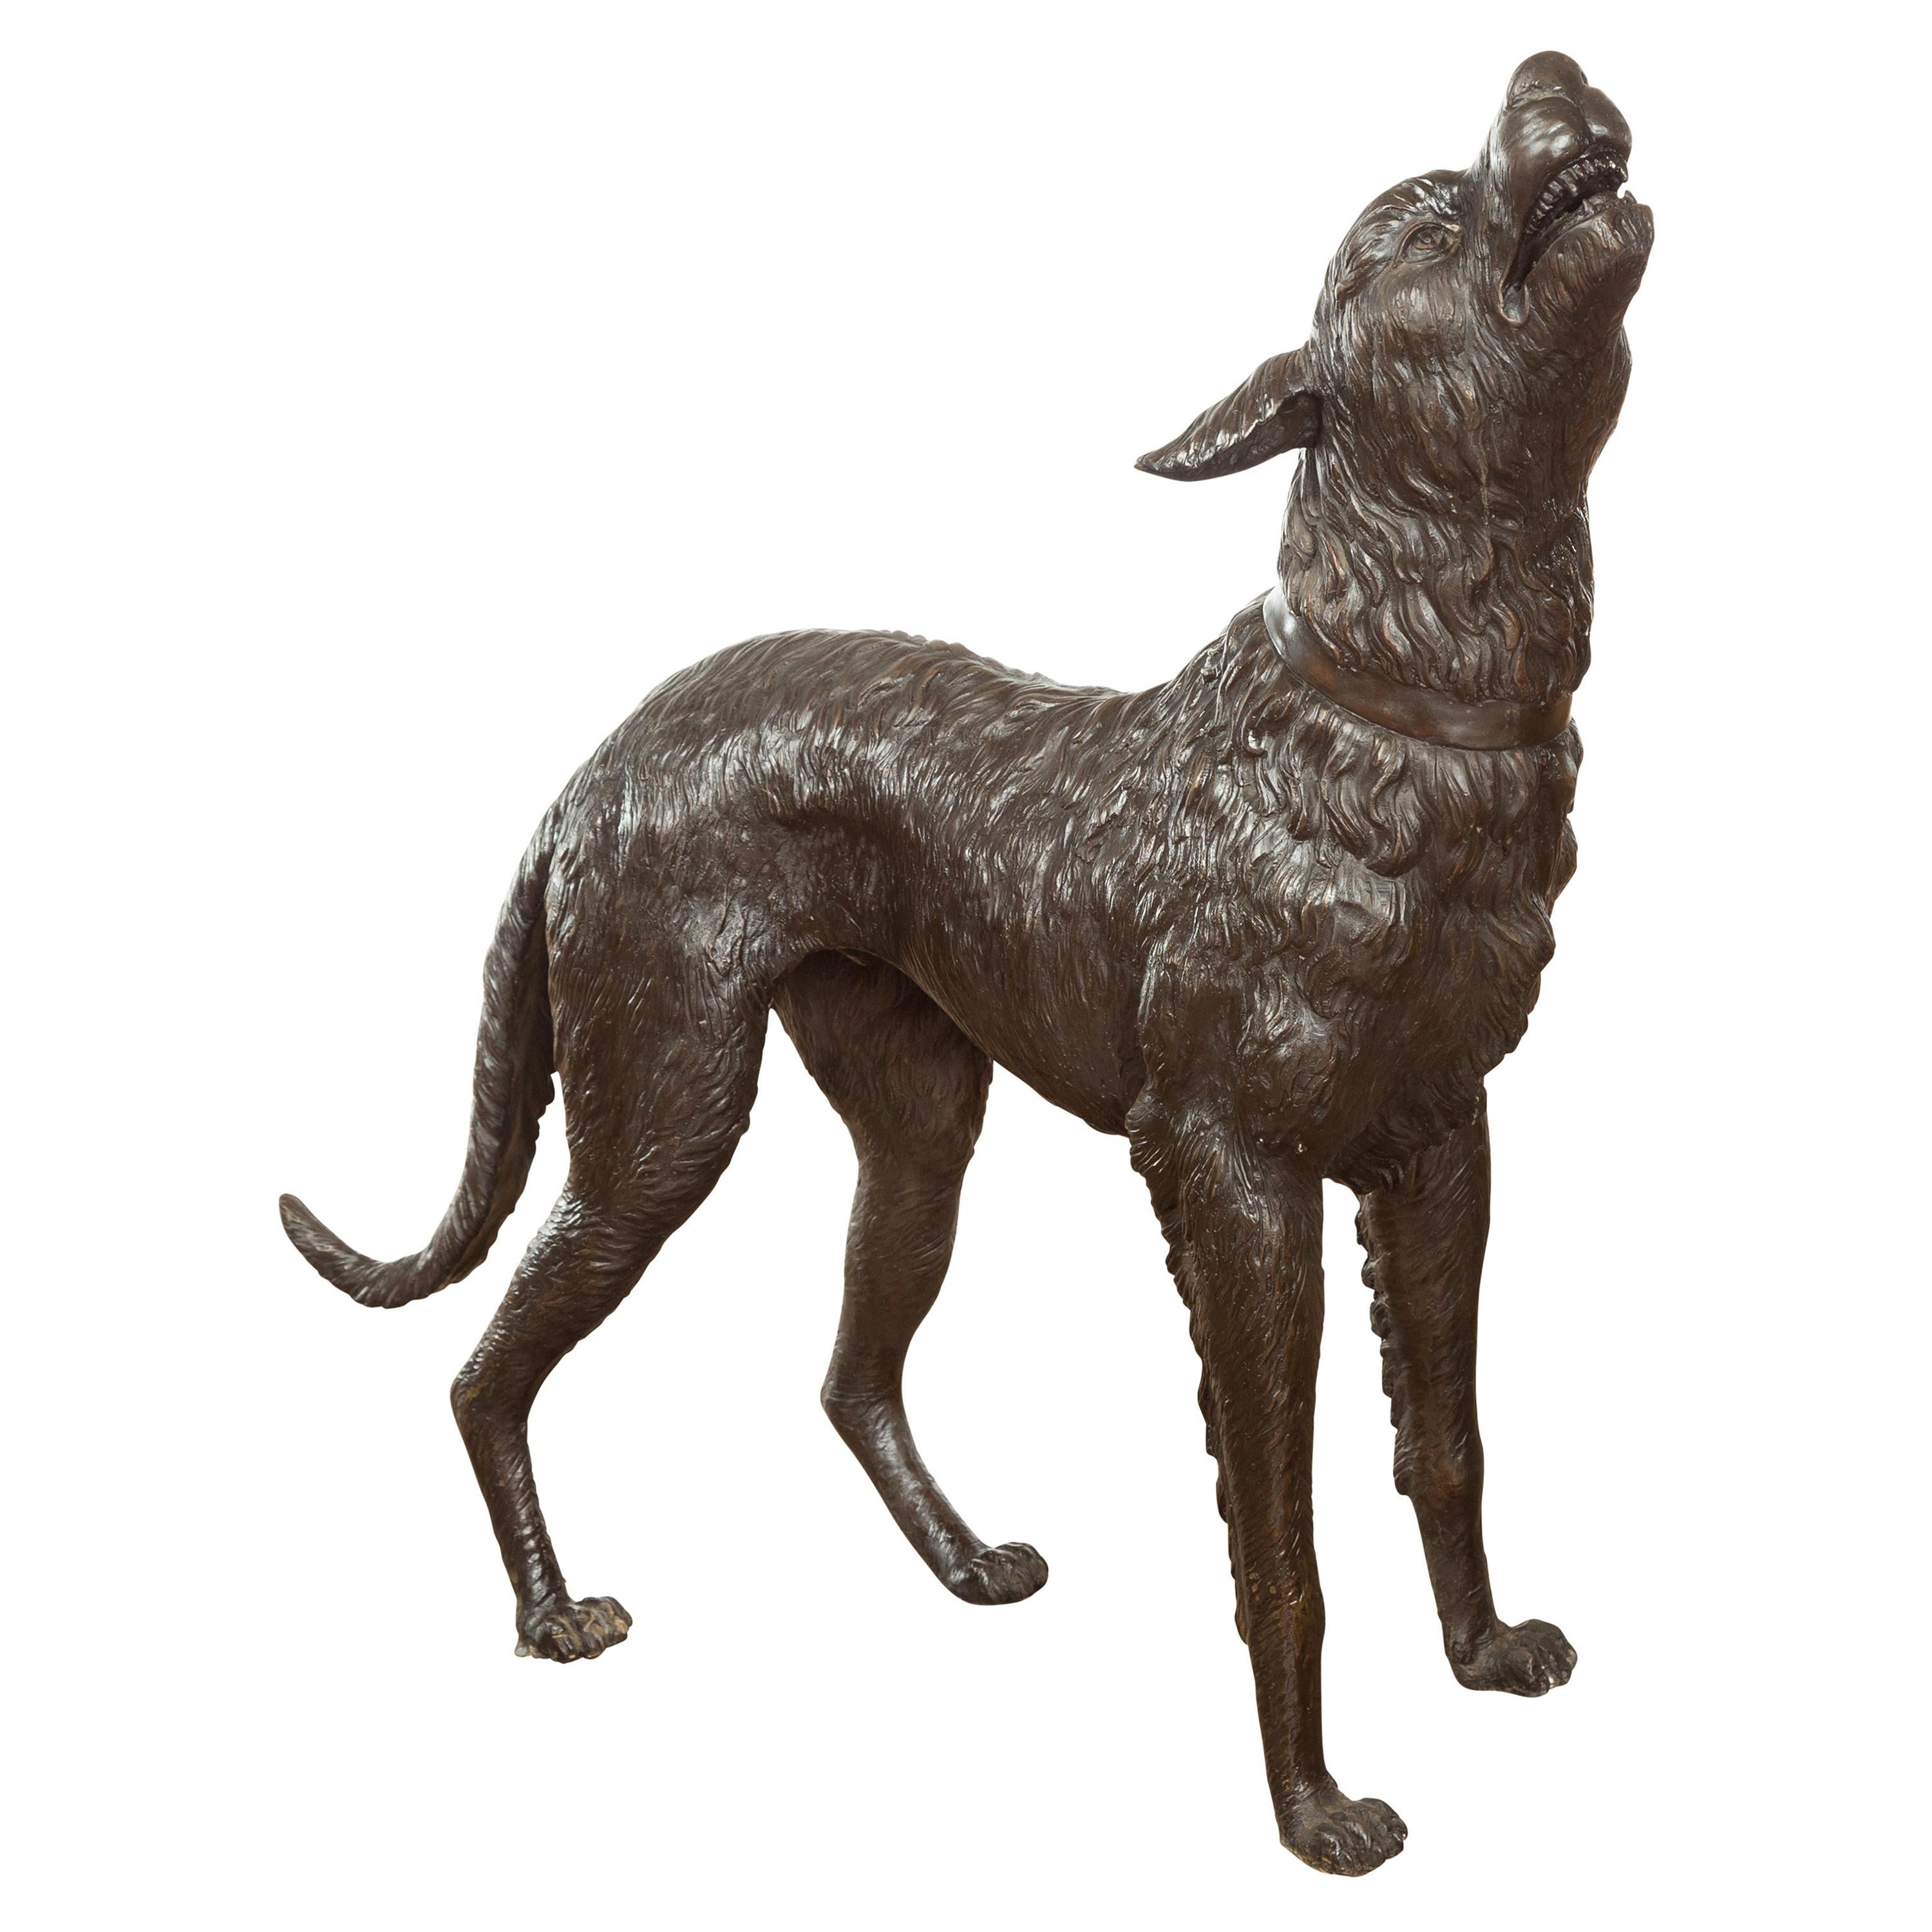 Vintage Lost Wax Cast Bronze Sculpture of a Howling Dog with Textured Patina